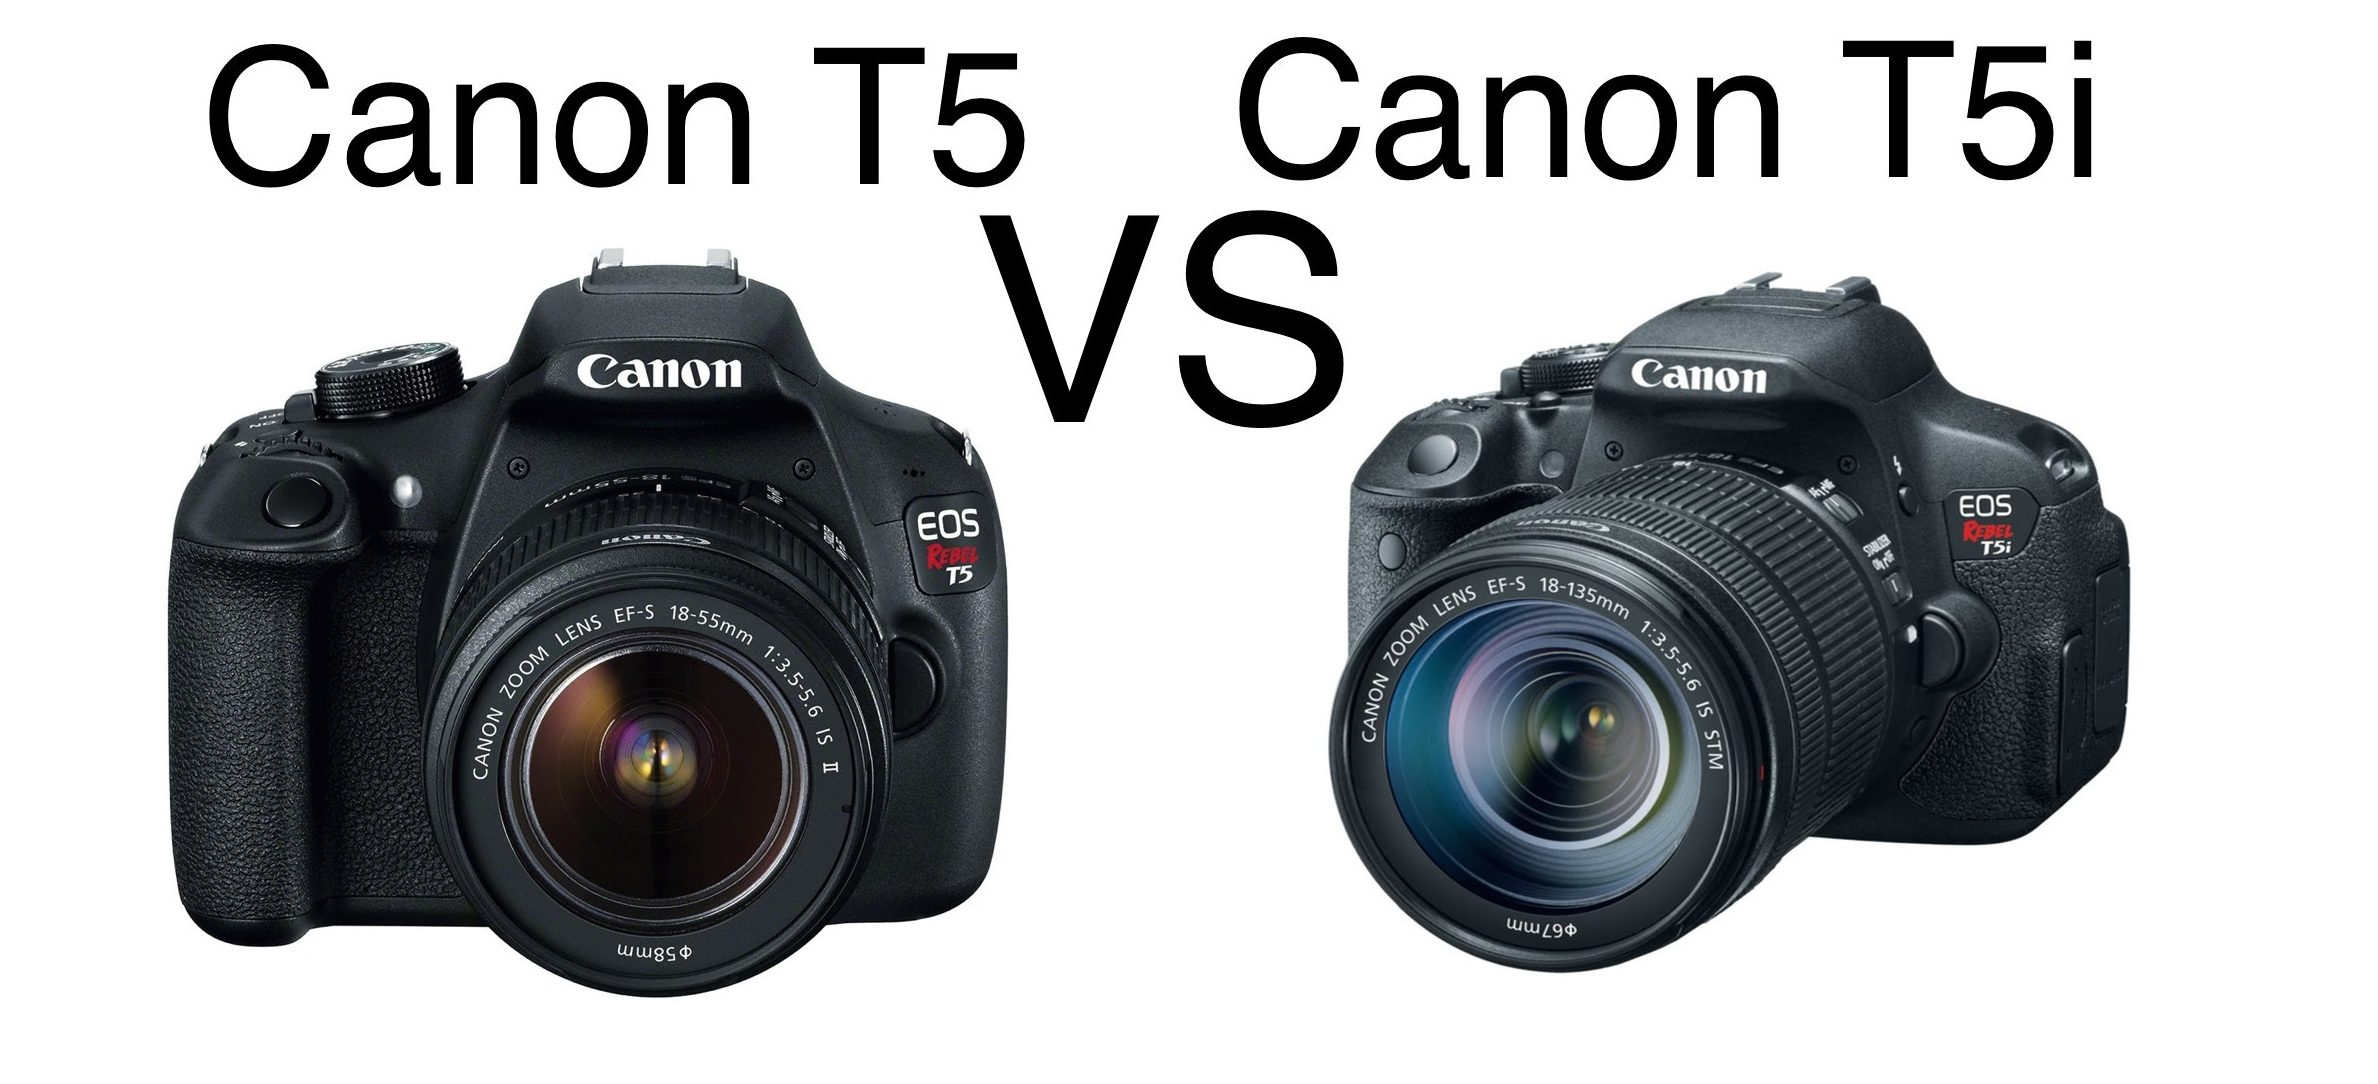 The Canon T5 vs T5i Reviews of 2019